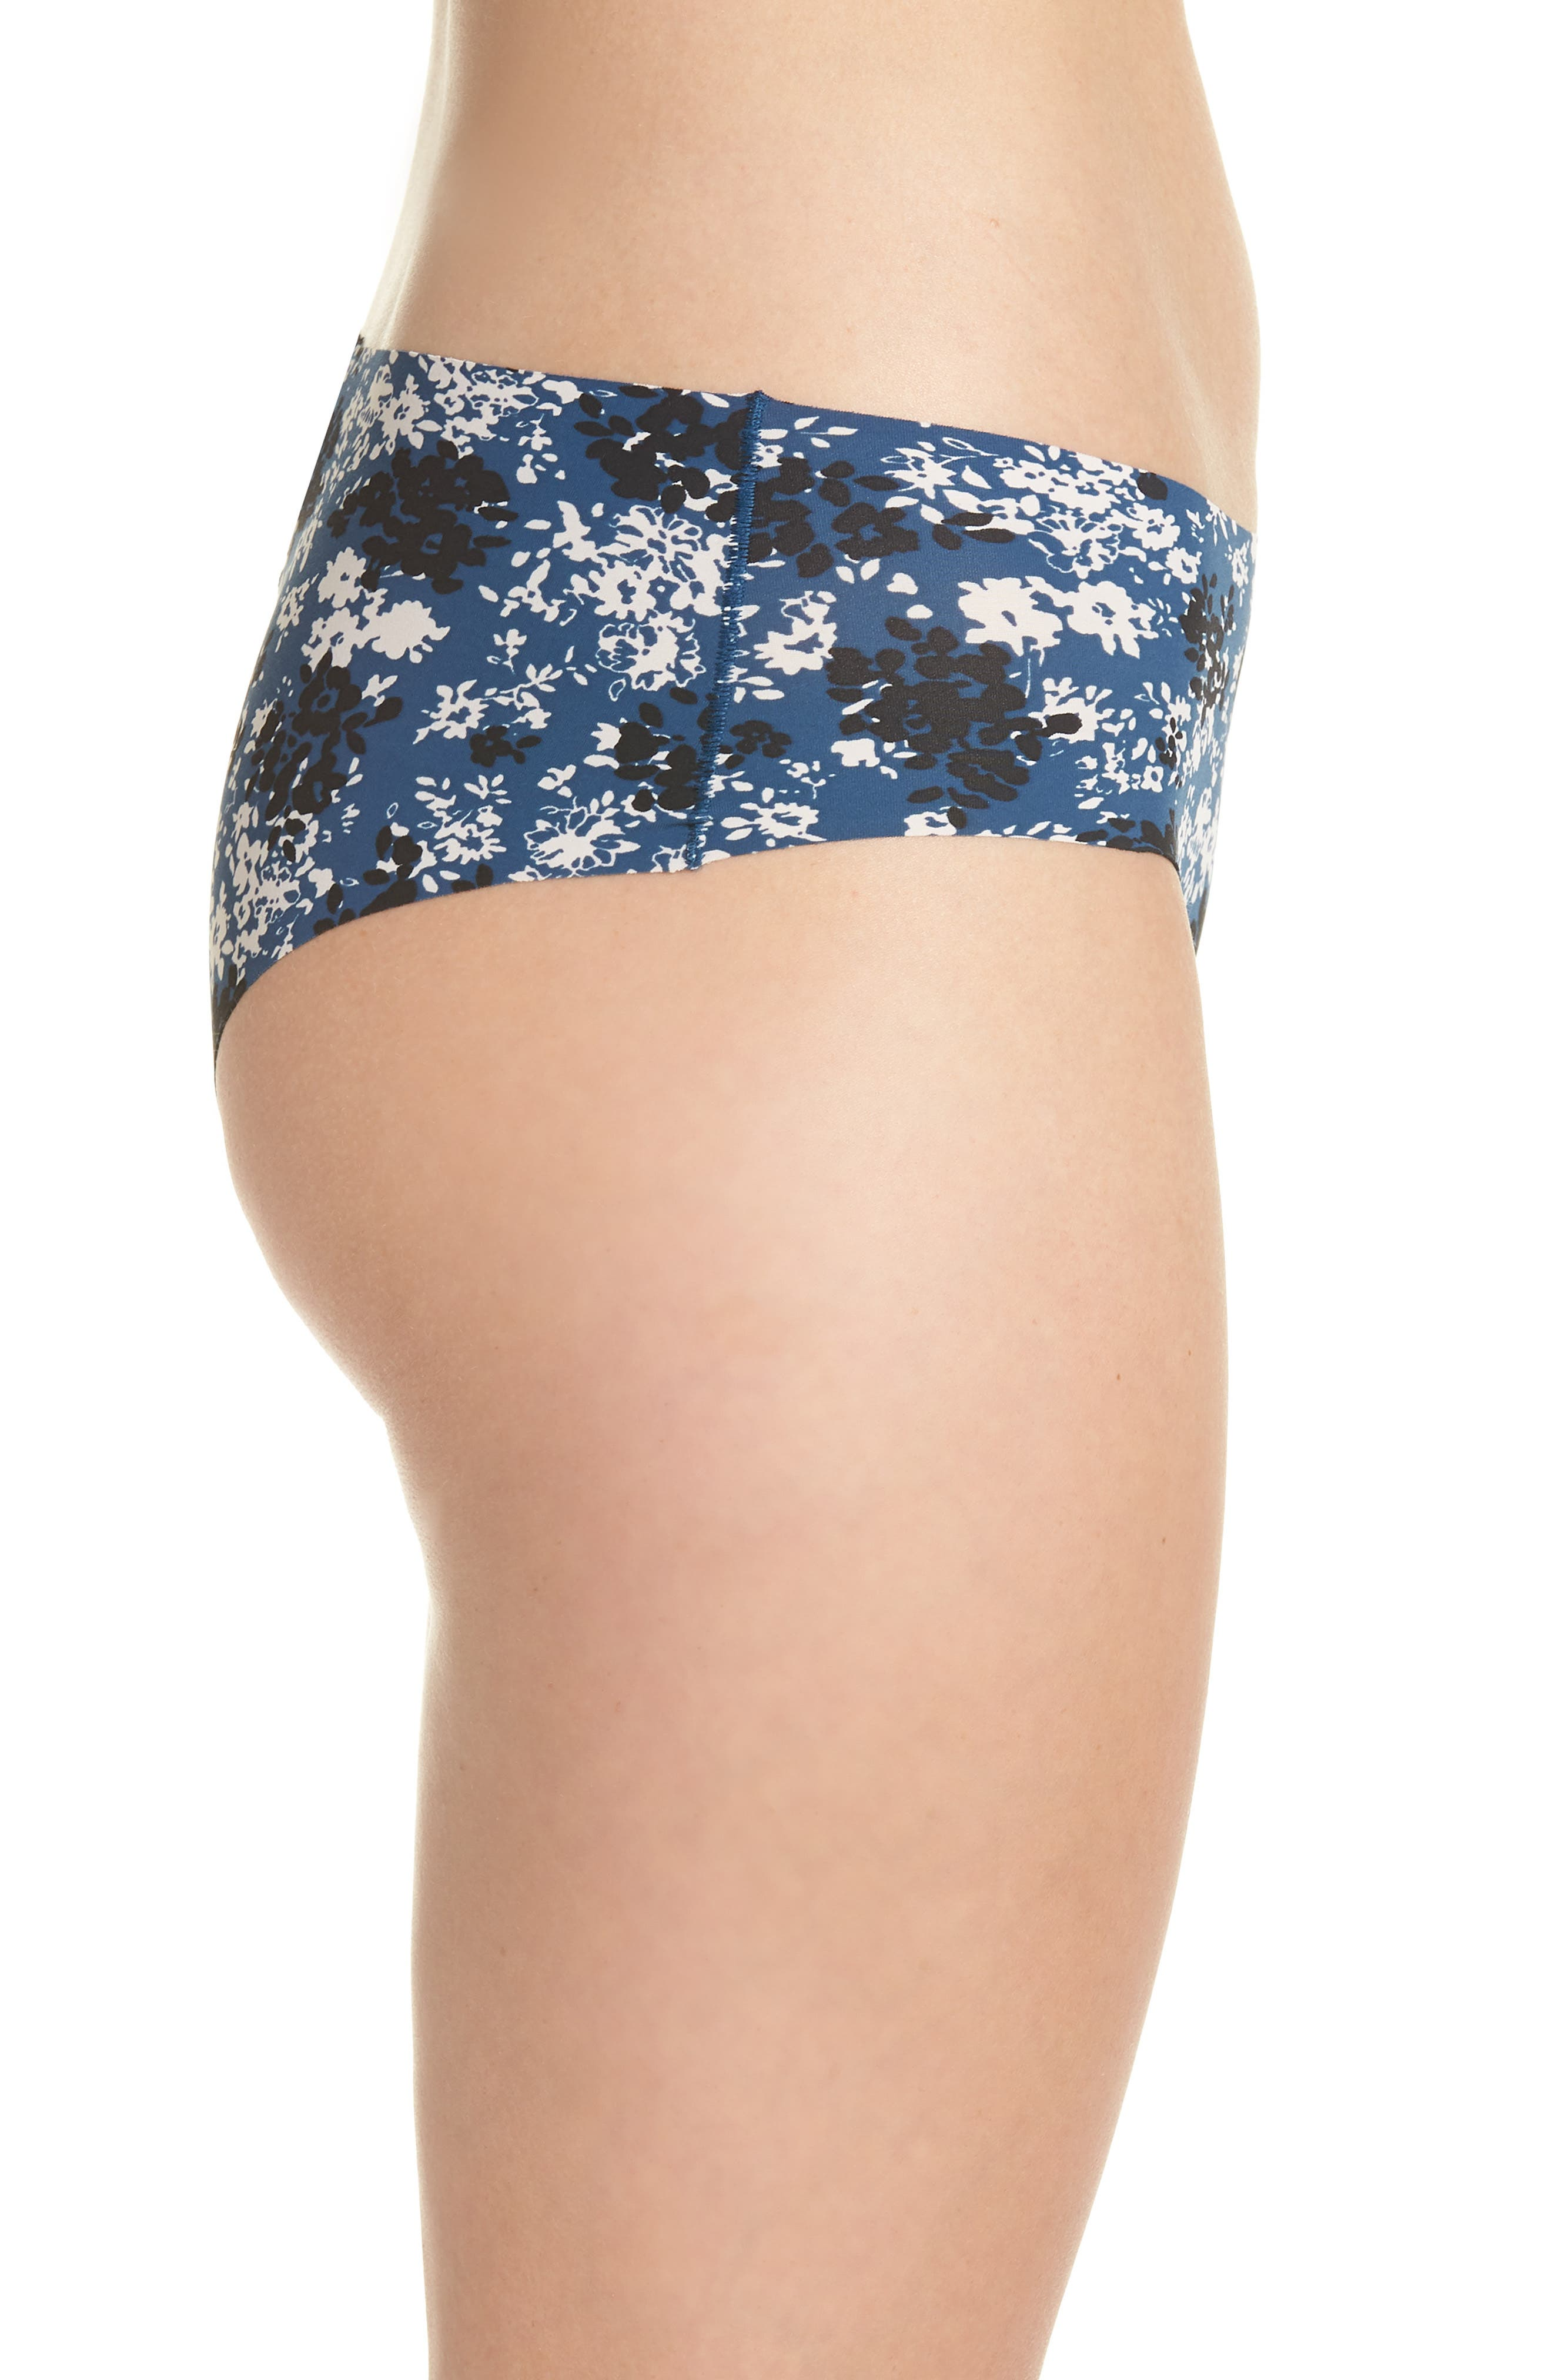 Invisibles Hipster Briefs,                             Alternate thumbnail 3, color,                             SIMPLE FLORAL/ LYRIA BLUE